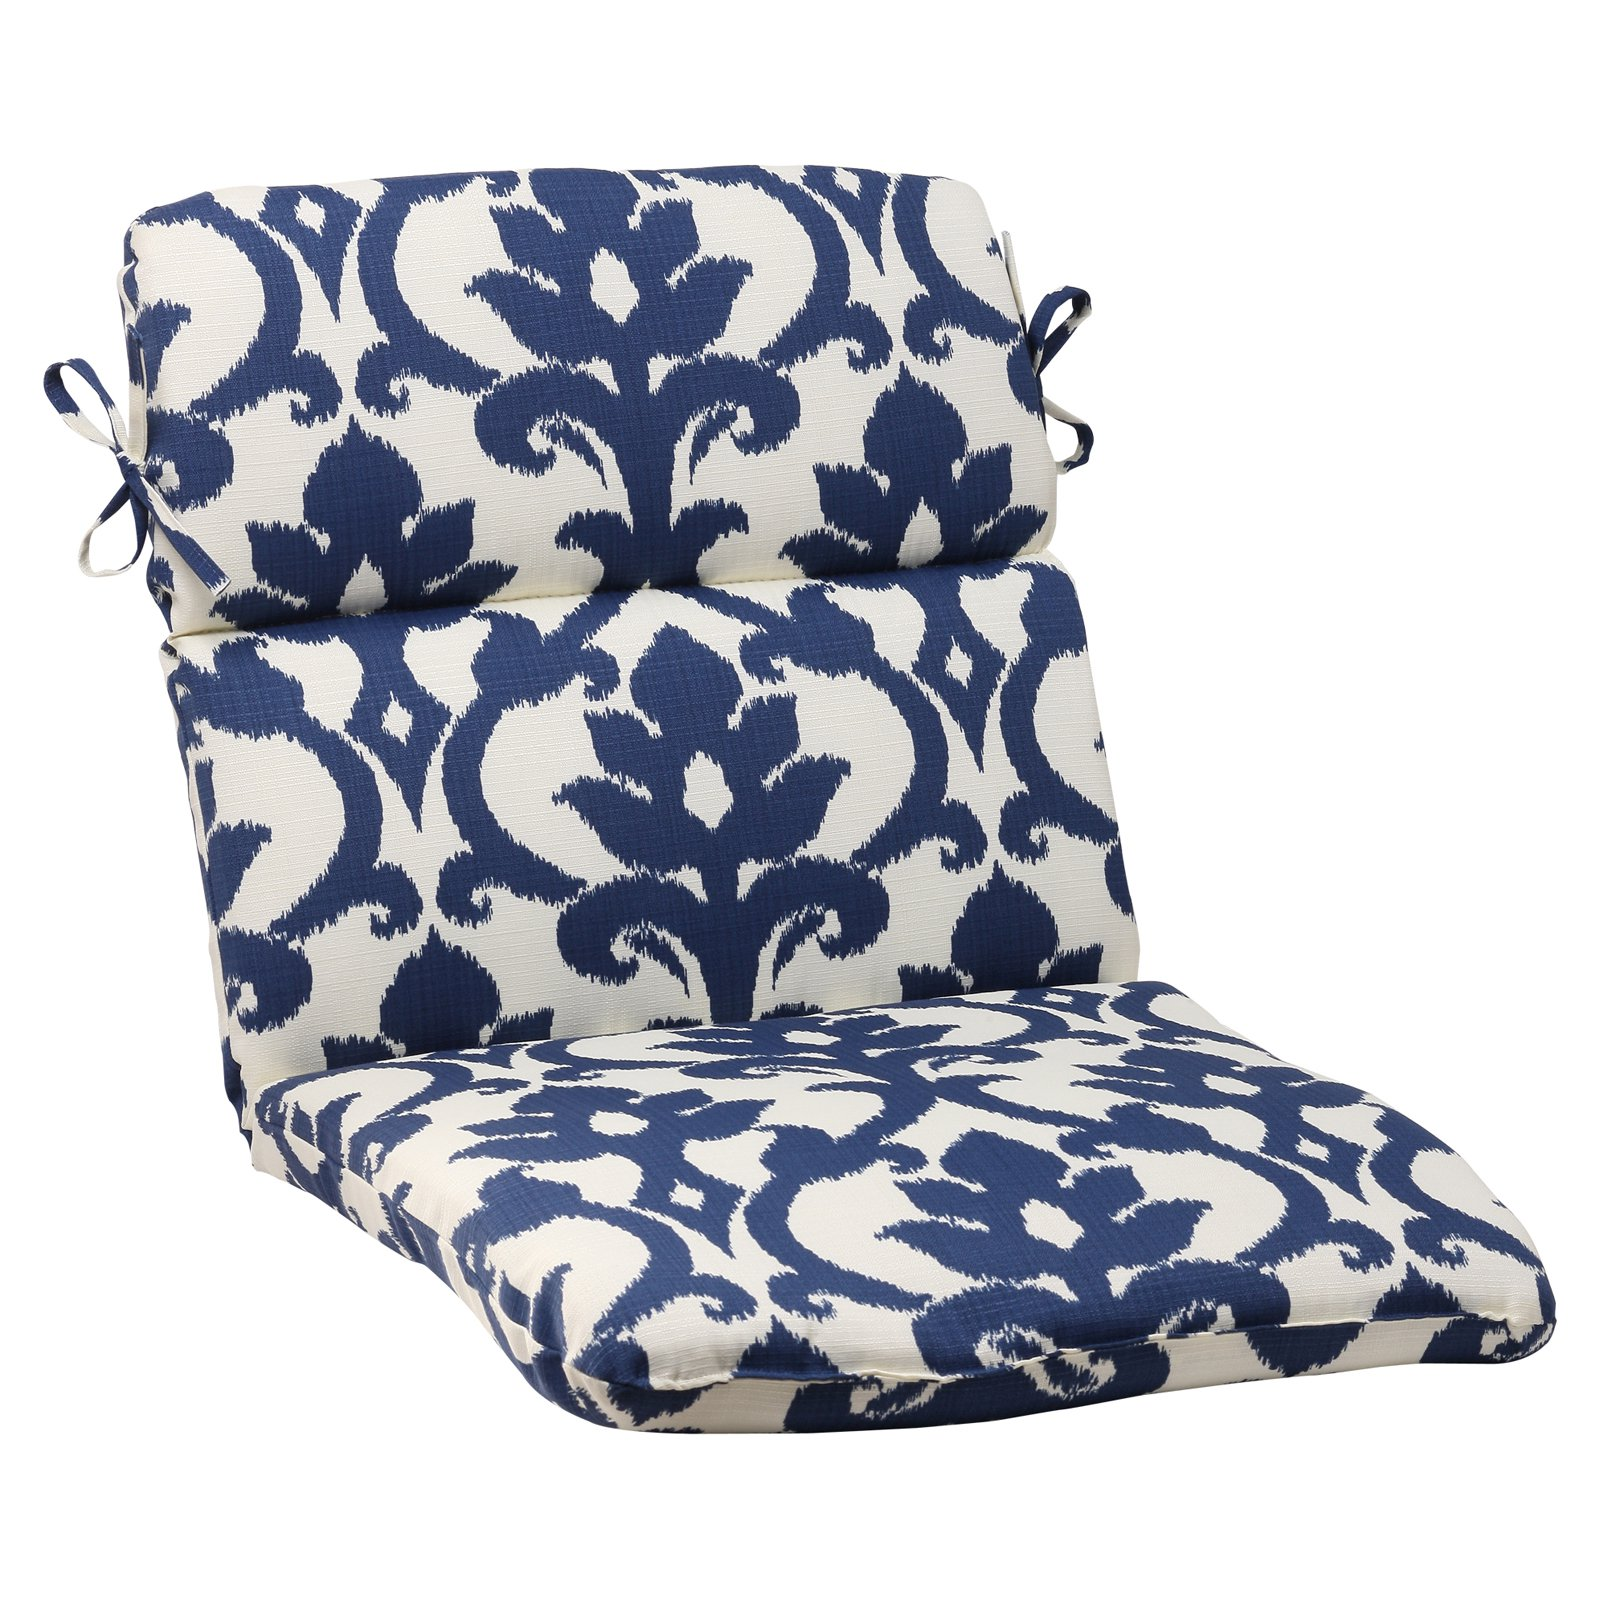 Pillow Perfect Outdoor/ Indoor Bosco Navy Rounded Corners Chair Cushion